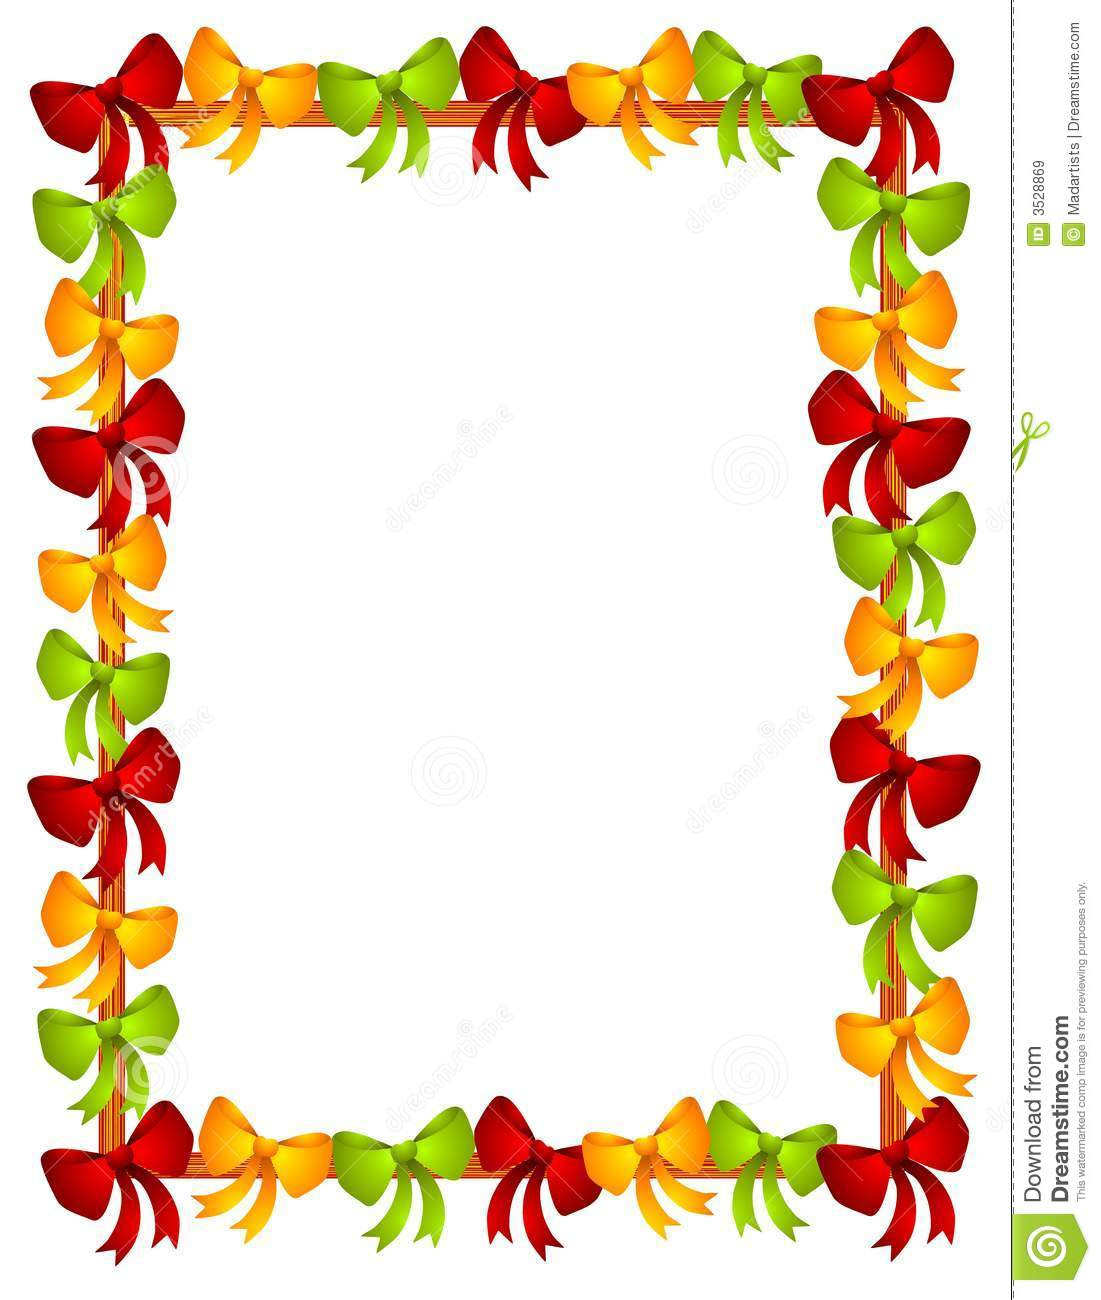 birthday frame clipart google clip art christmas free christmas clipart borders frameschristmas holly frame with